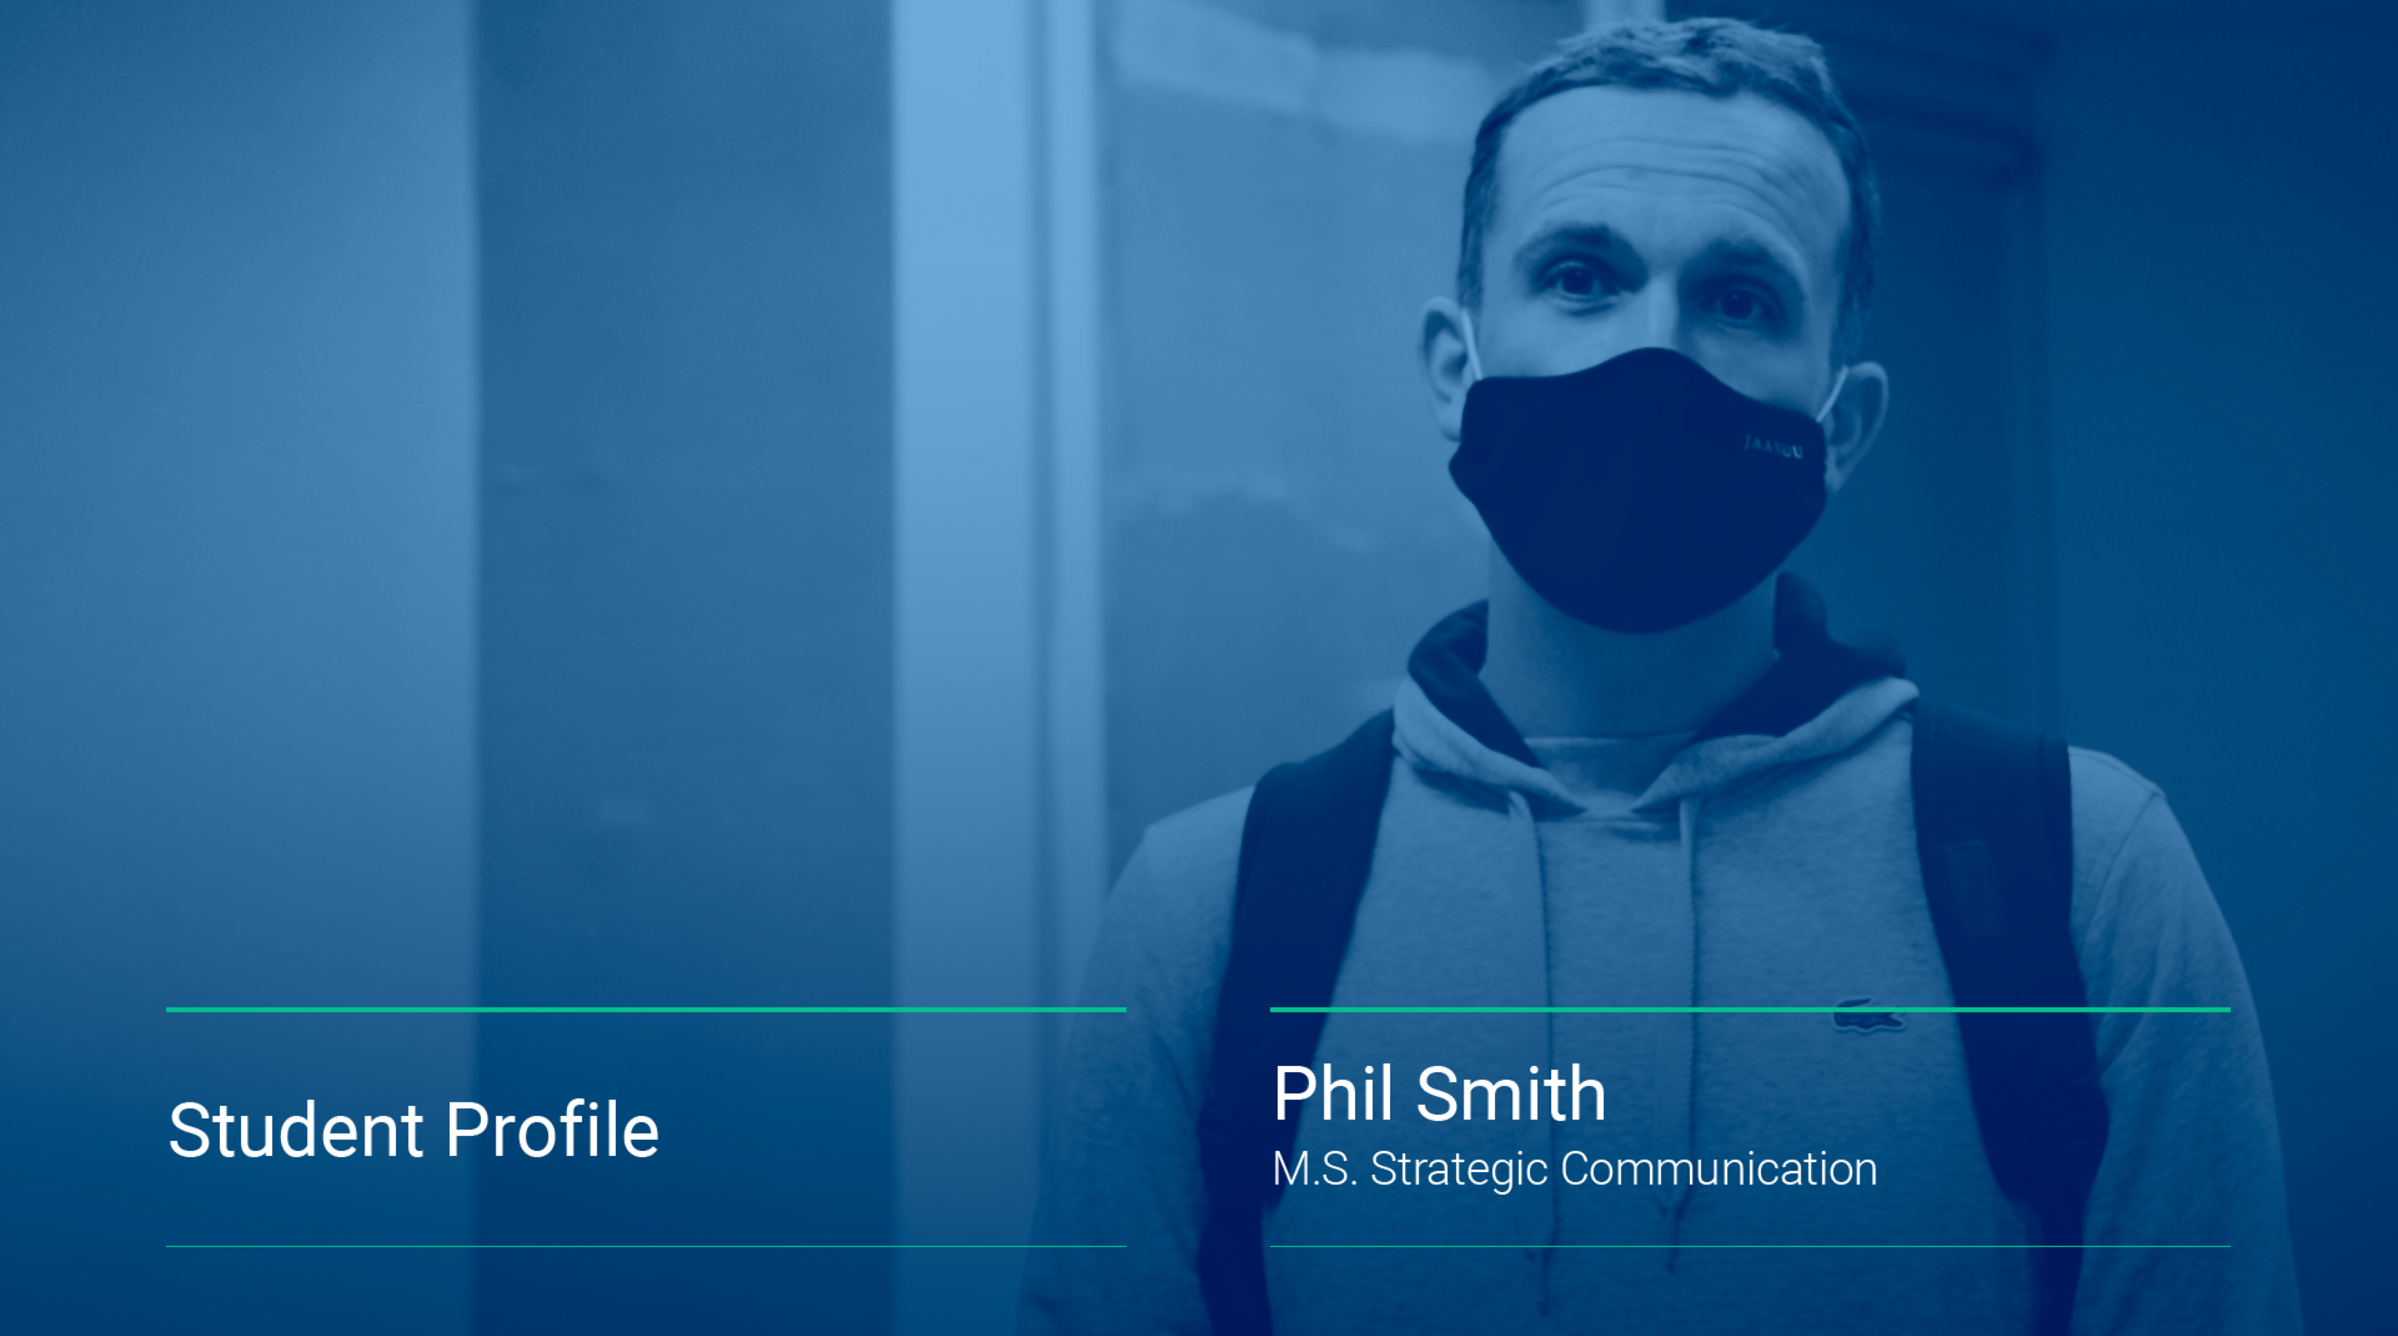 An image displays a still from a video interview featuring Phil Smith, '21SPS, Strategic Communication.